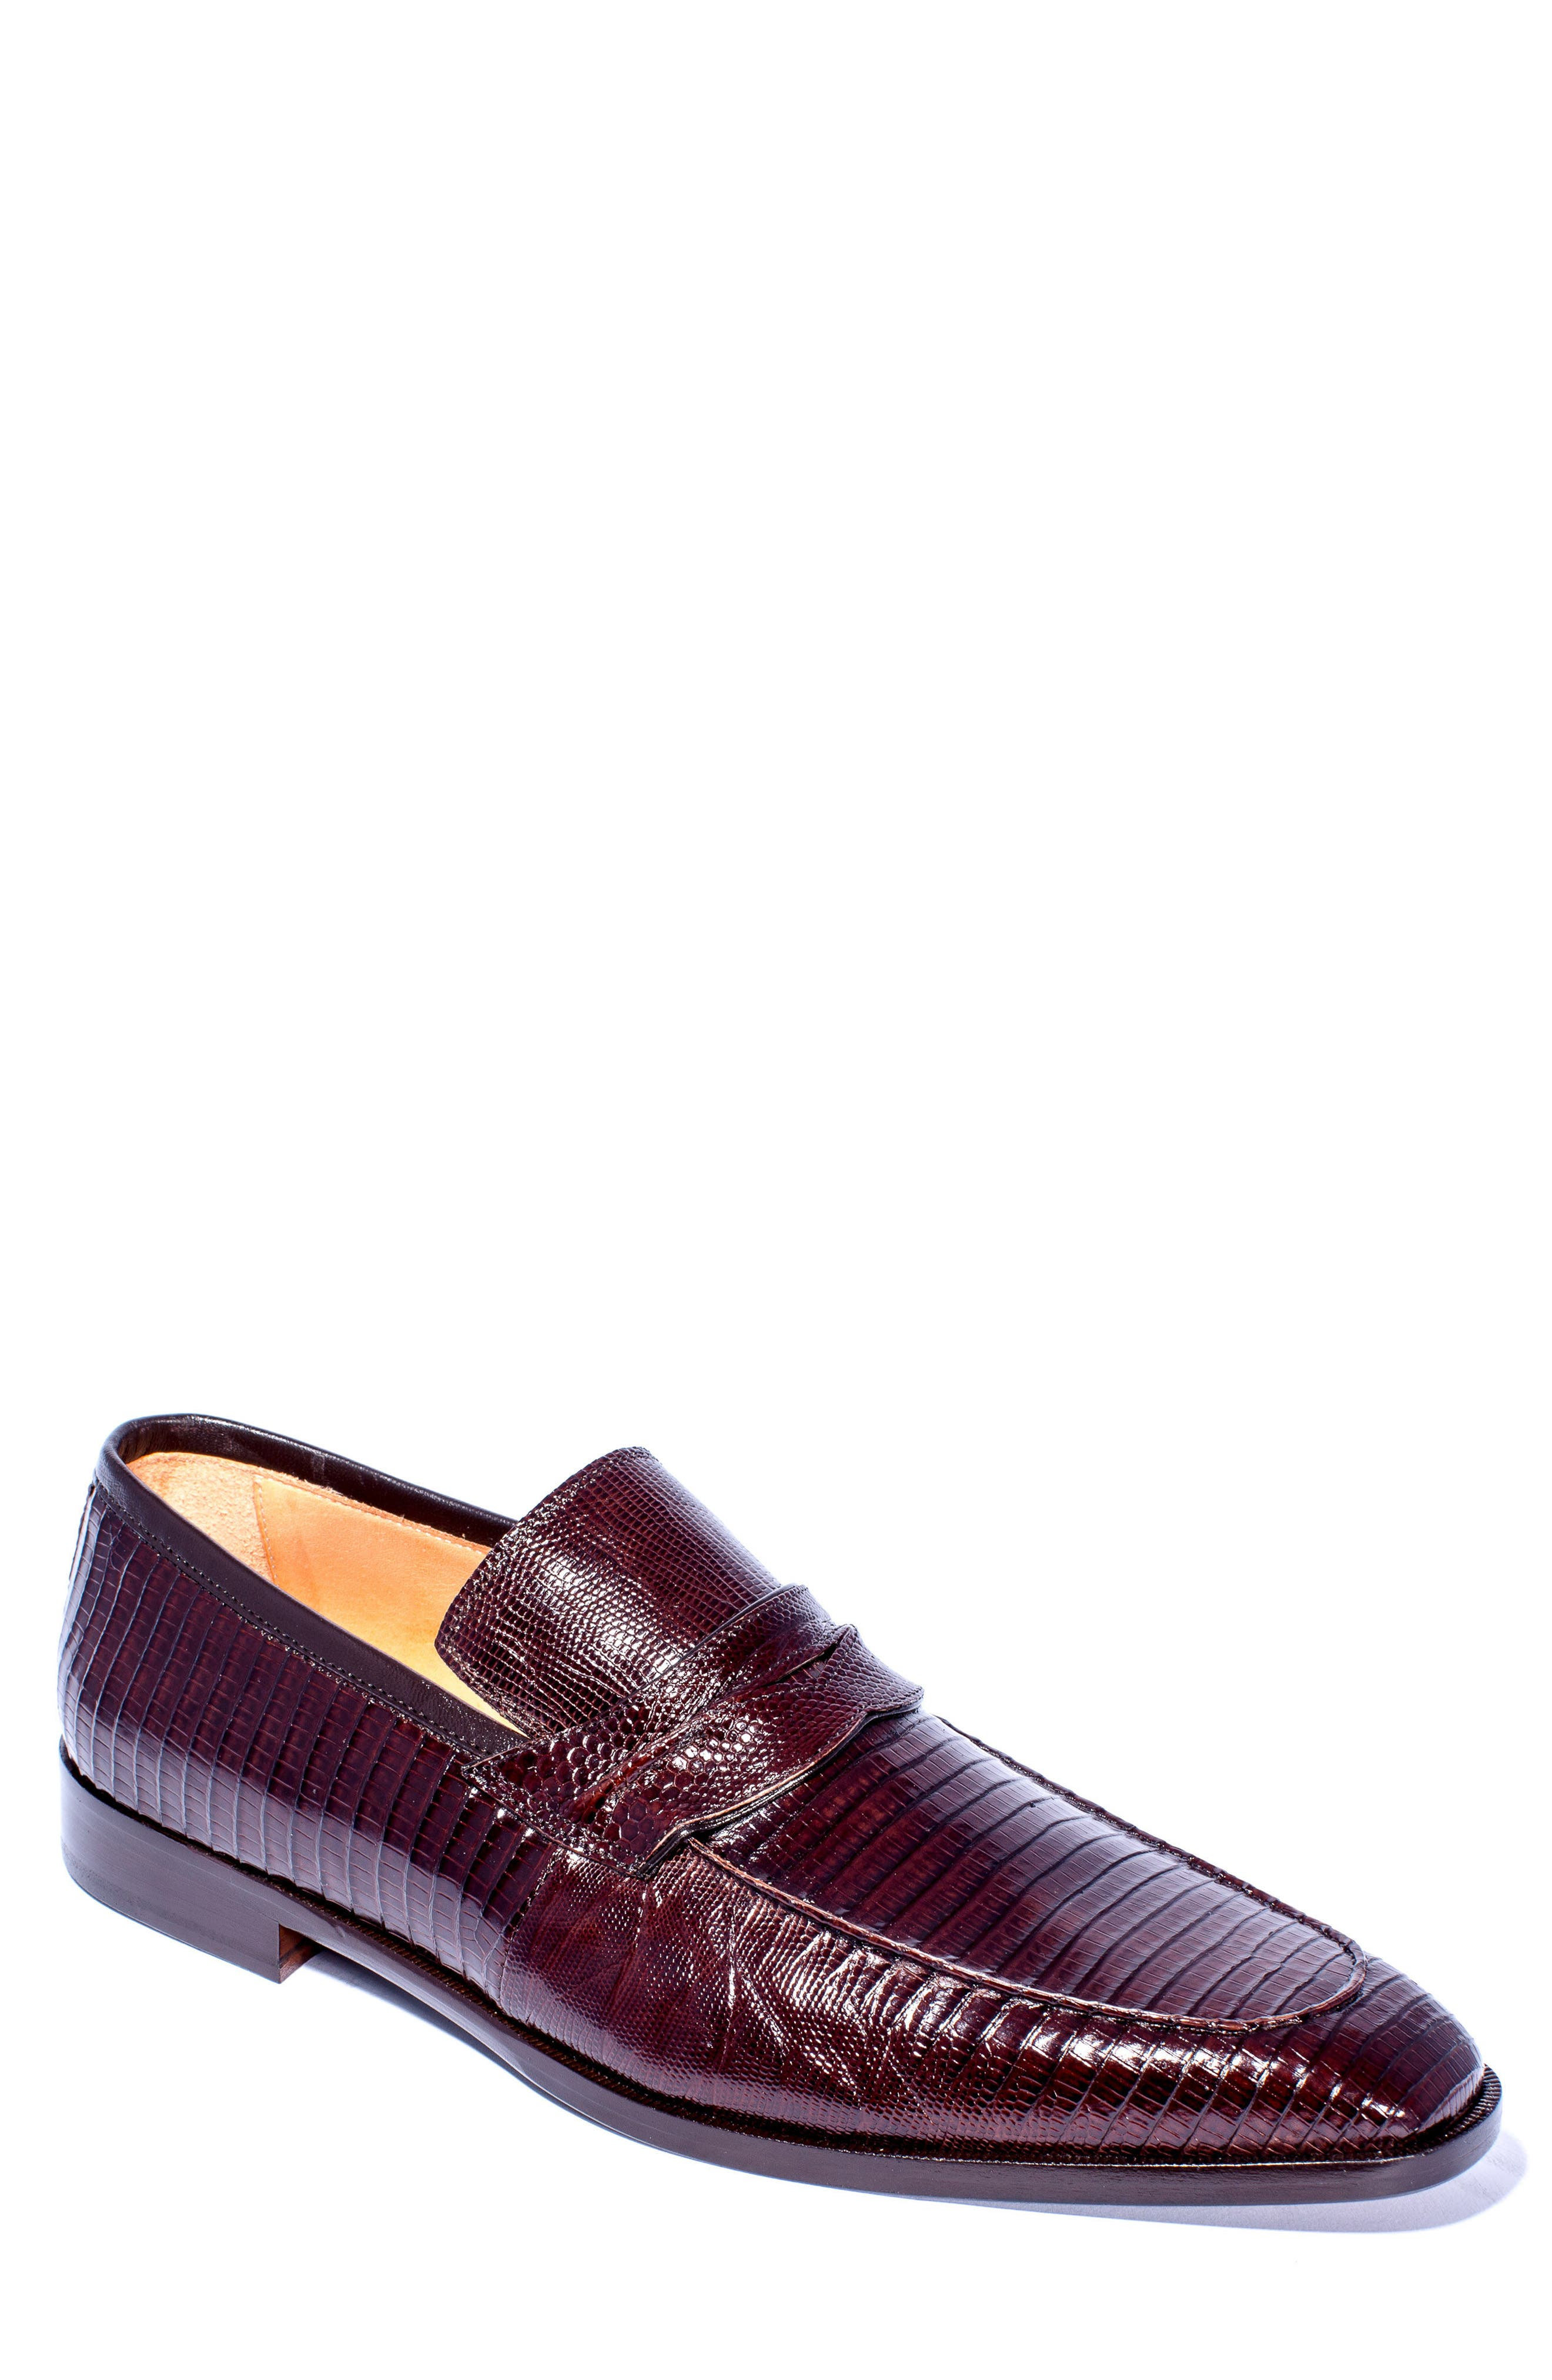 Meo Penny Loafer,                         Main,                         color, Brown